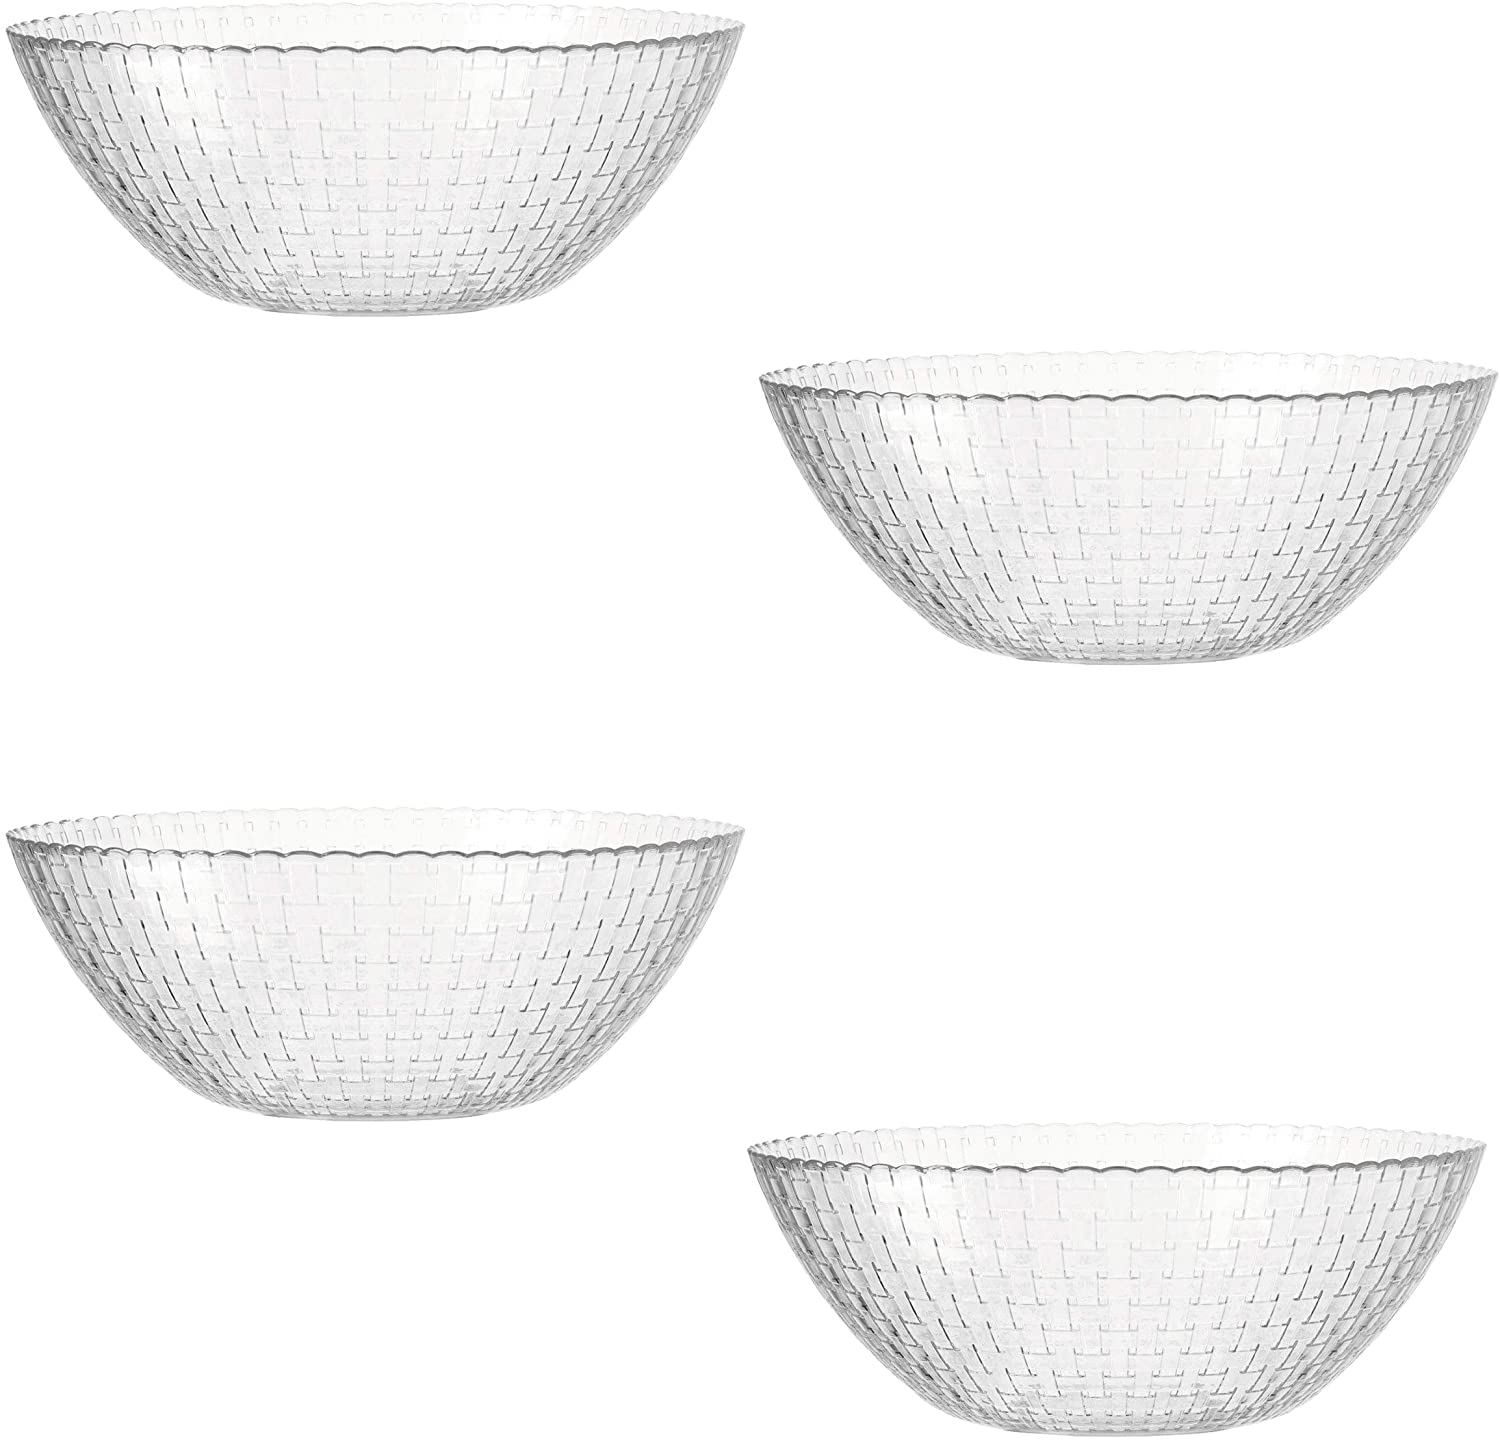 montana: eve 030284 Bowl, Set of 4, Bowl, Serving Bowl, Glass Bowl, Diameter 31 cm,